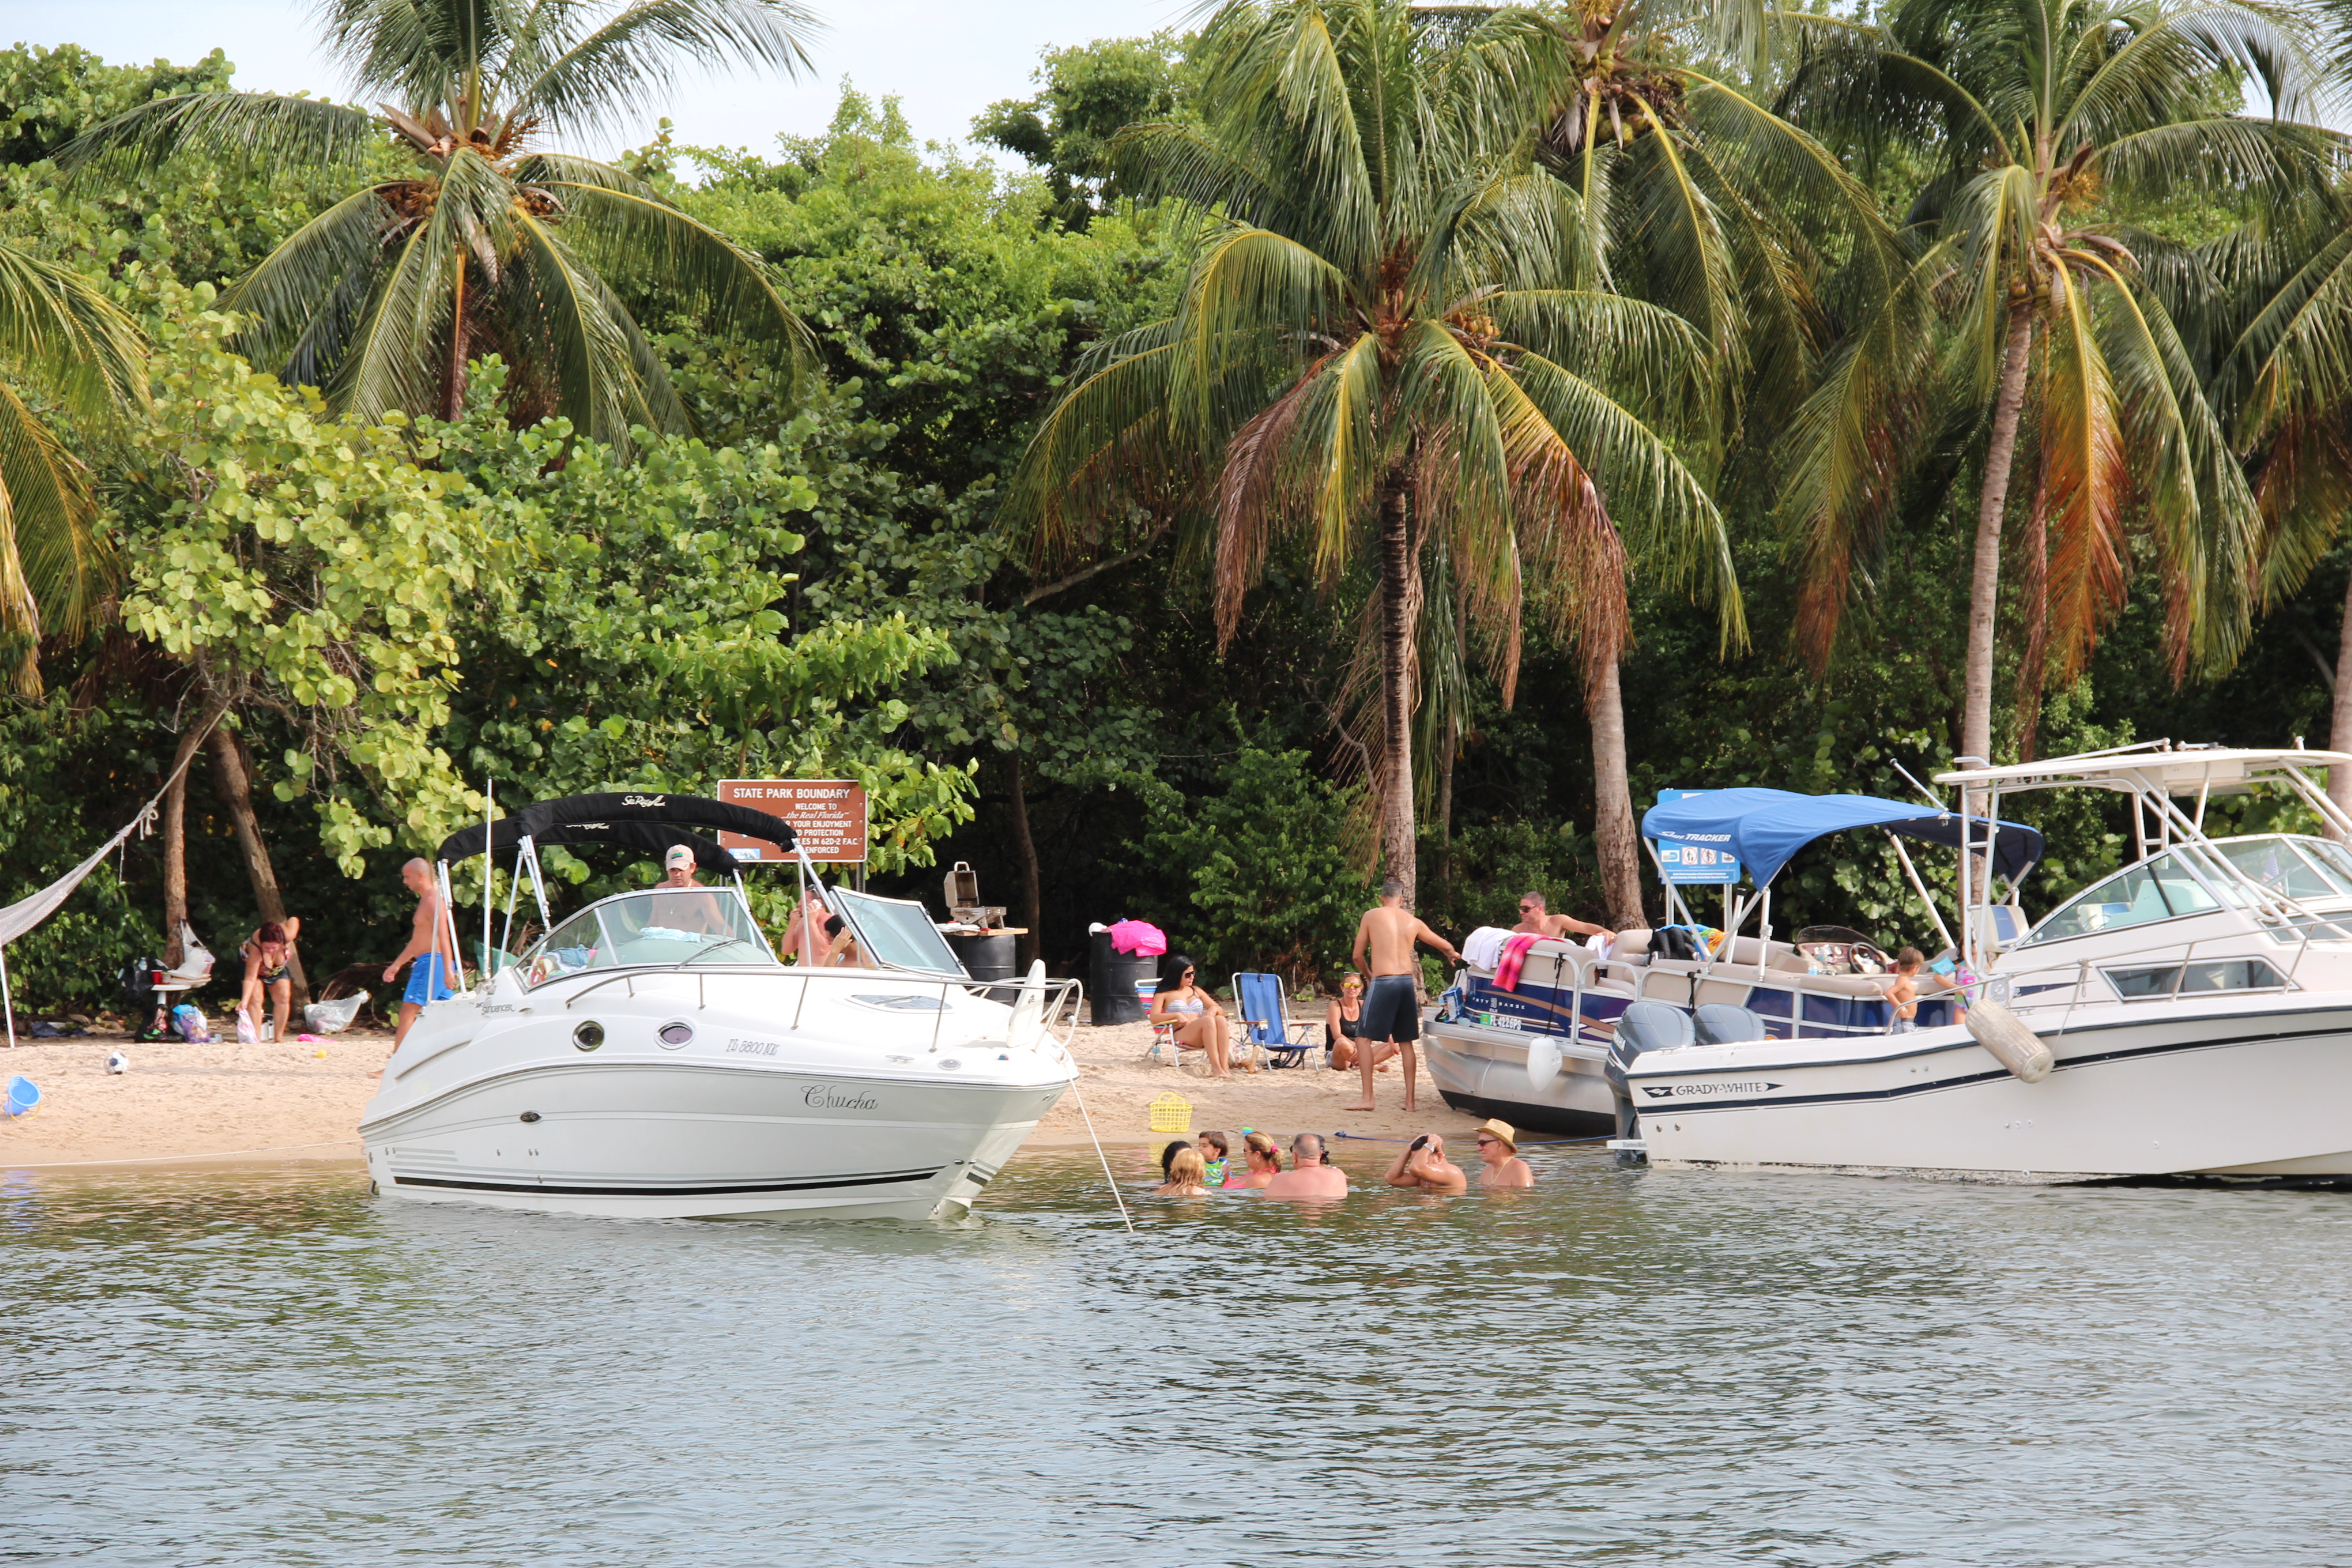 Boats at Haulover Islands